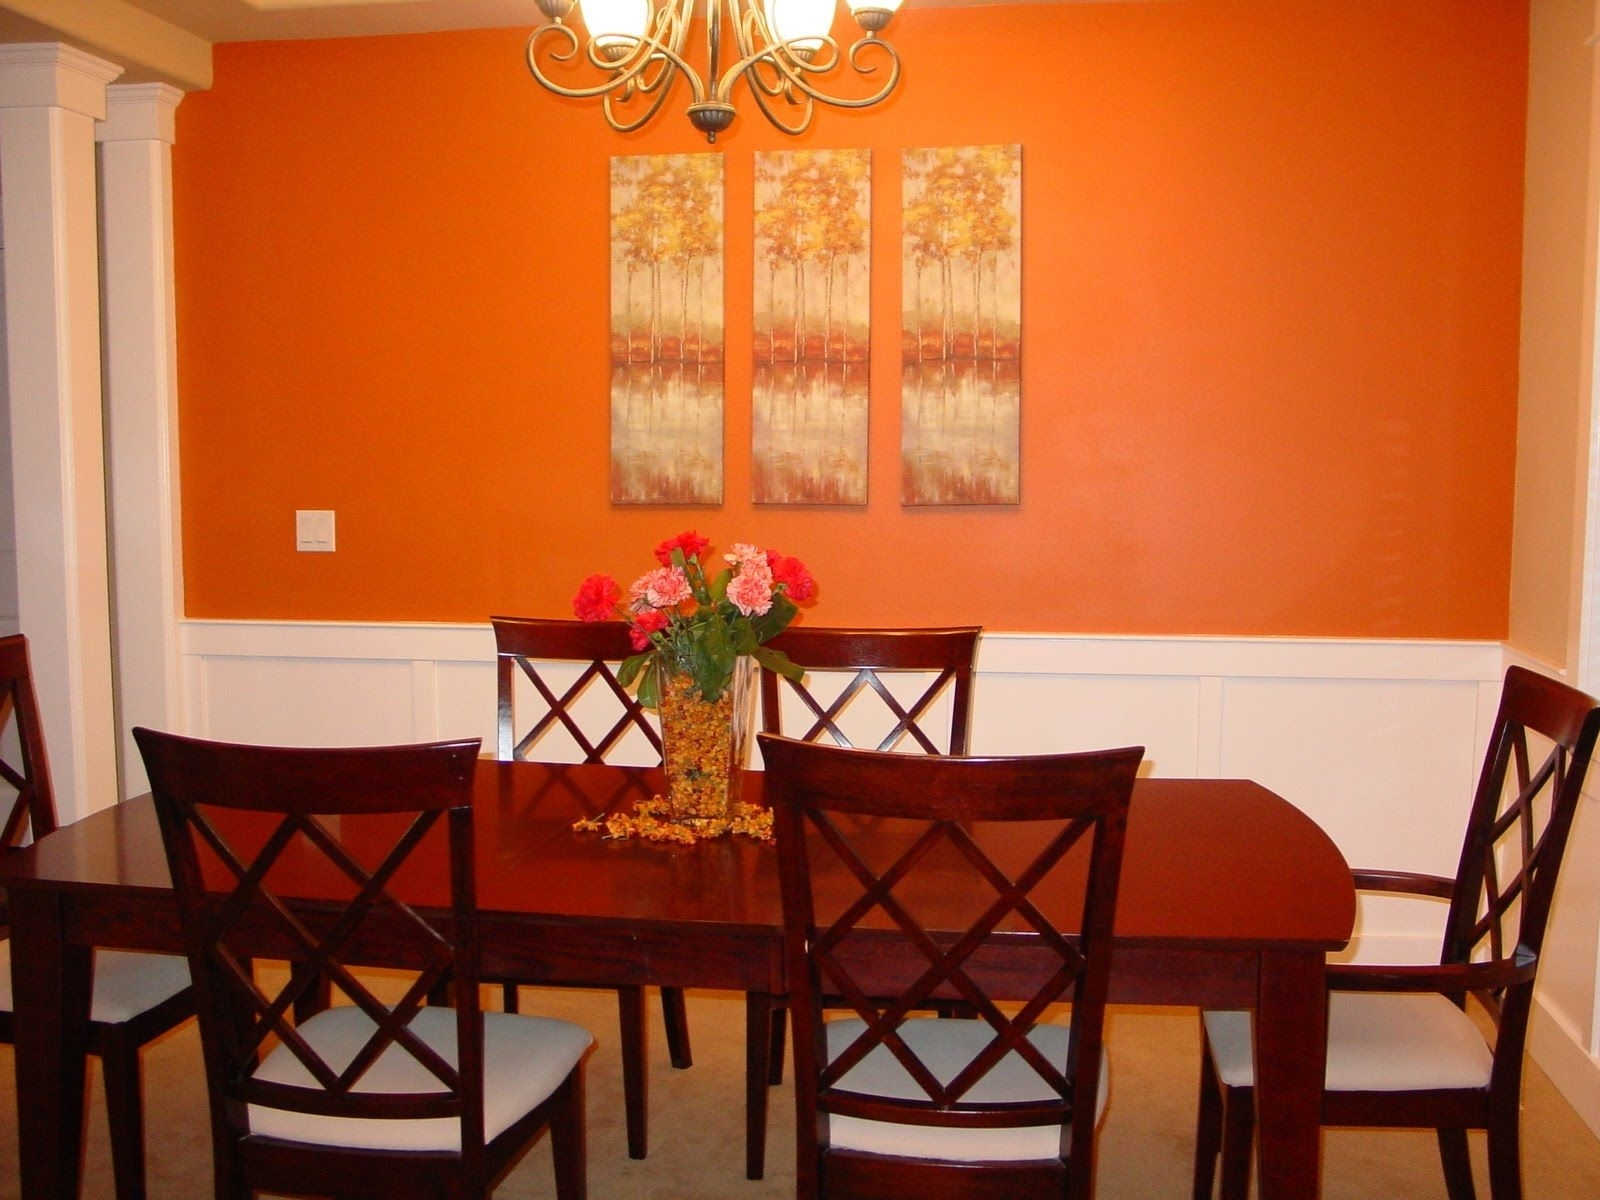 Dining Room Paint Ideas With Accent Wall Odqeaih New Home Rule In 2017 Dining Room Wall Accents (View 7 of 15)